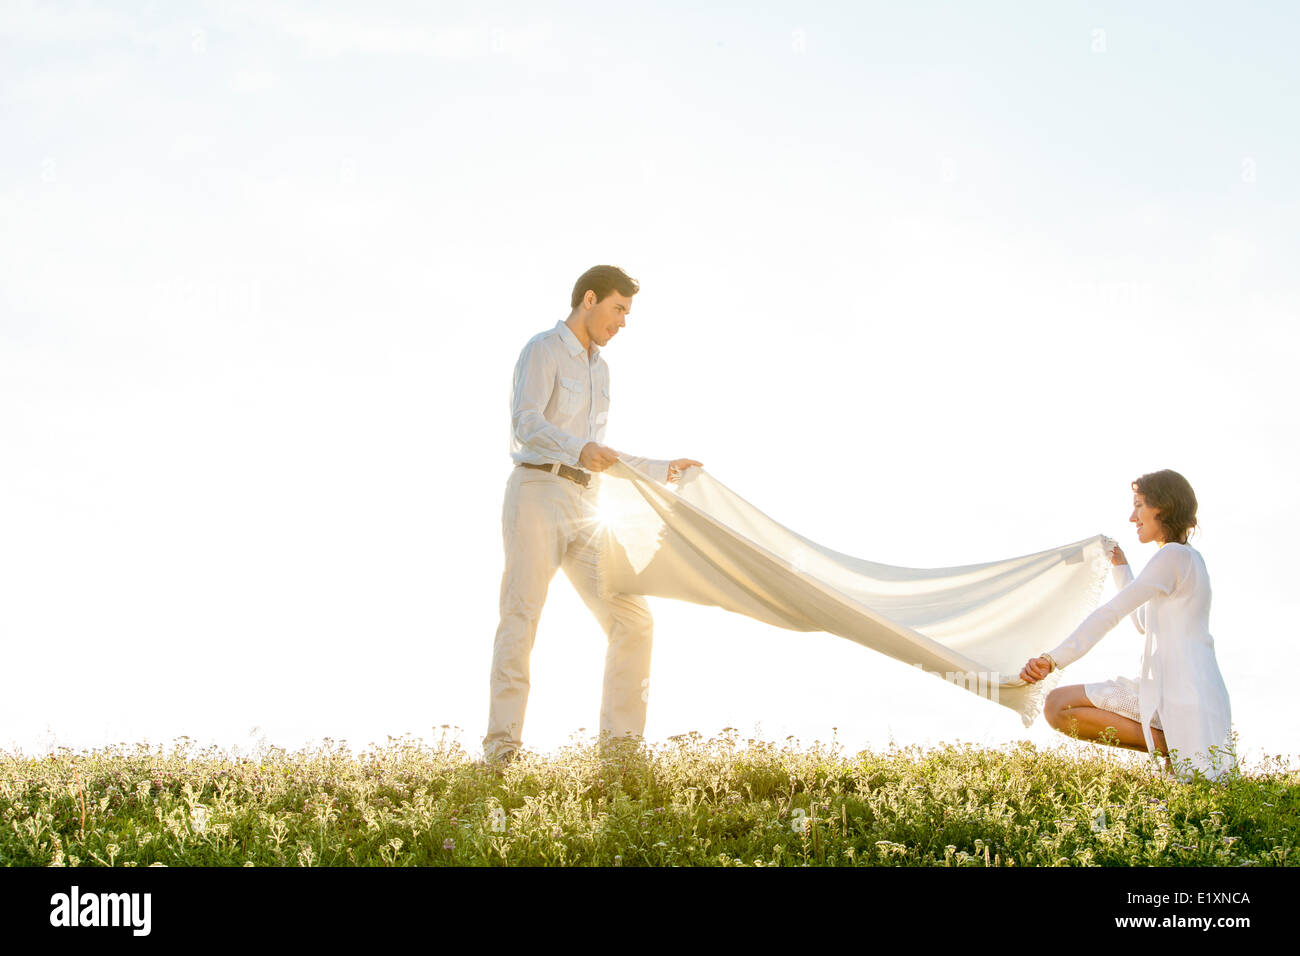 Side view of woman and man spreading picnic blanket on grass during sunny day - Stock Image